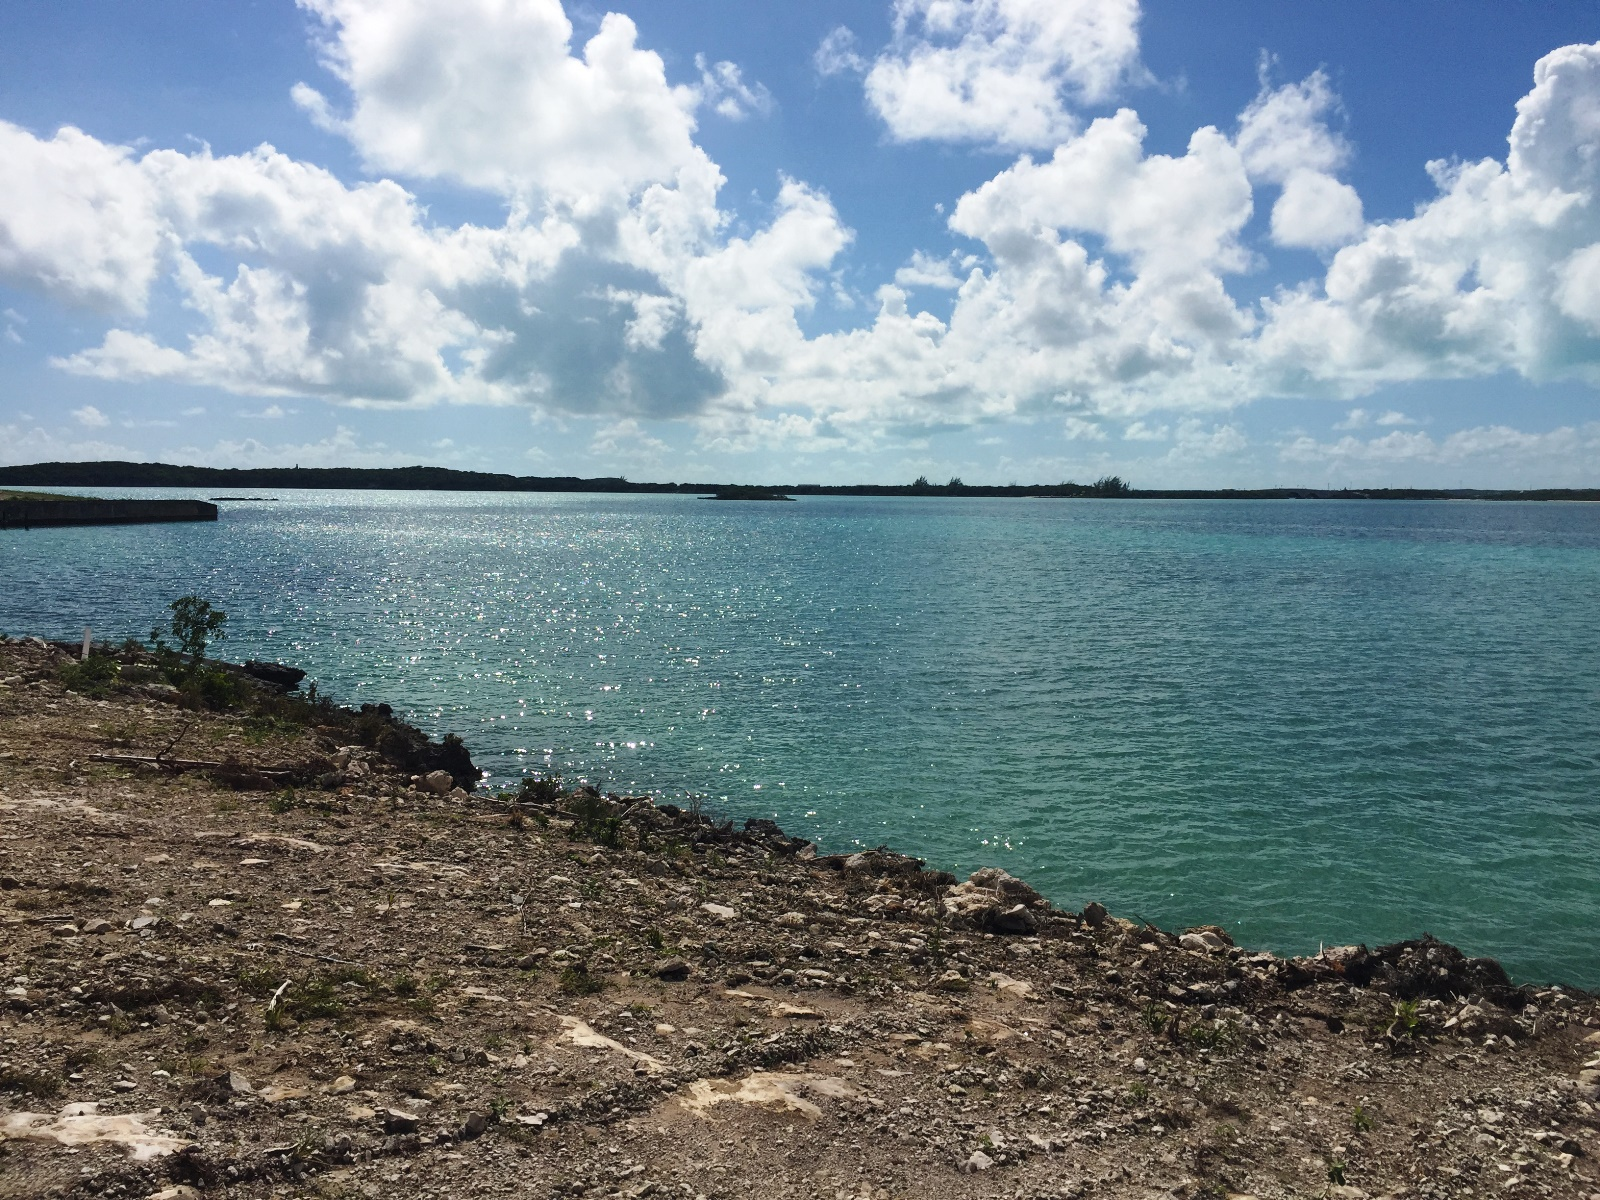 Land for Sale at Excellent Opportunity to Own and Build at February Point MLS 31120 February Point, Exuma, Bahamas